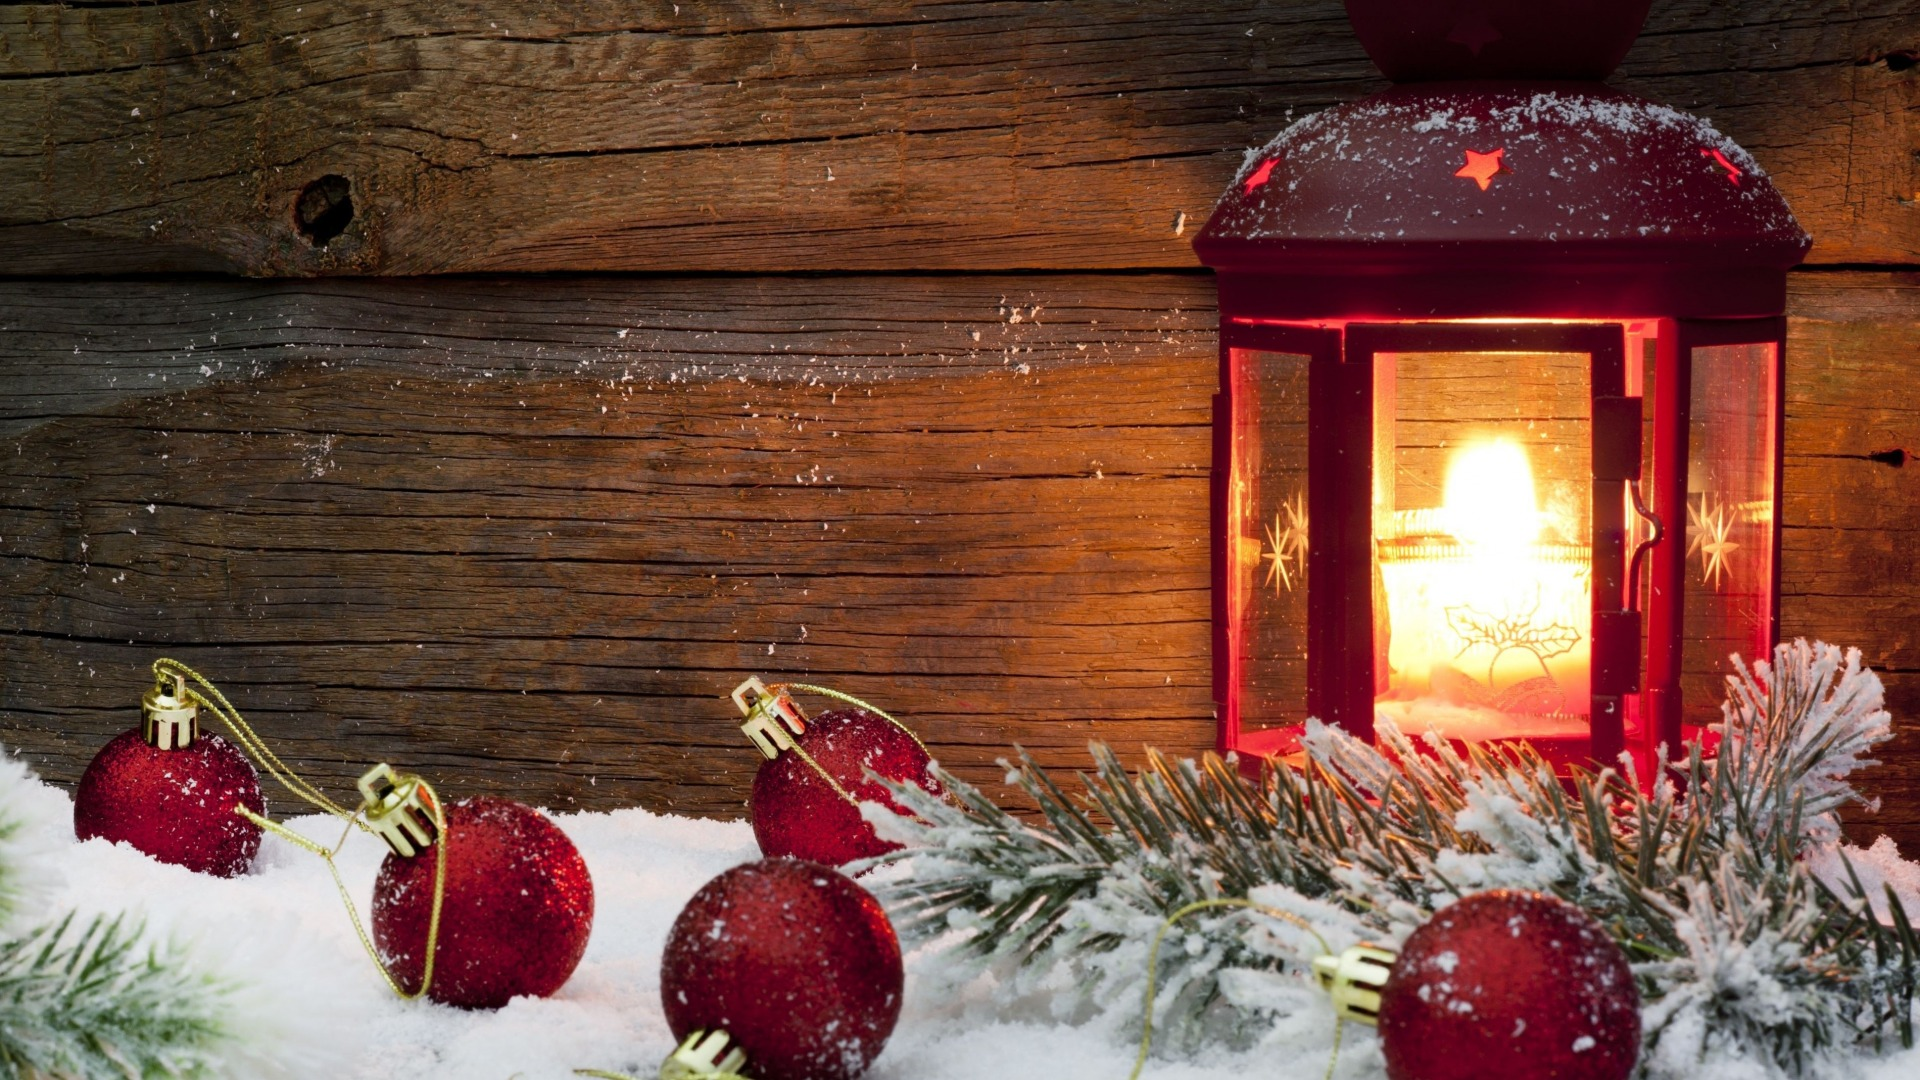 Download-winter-snow-red-background-fire-holiday-balls-toys-new-year-c-wallpaper-wp3804836